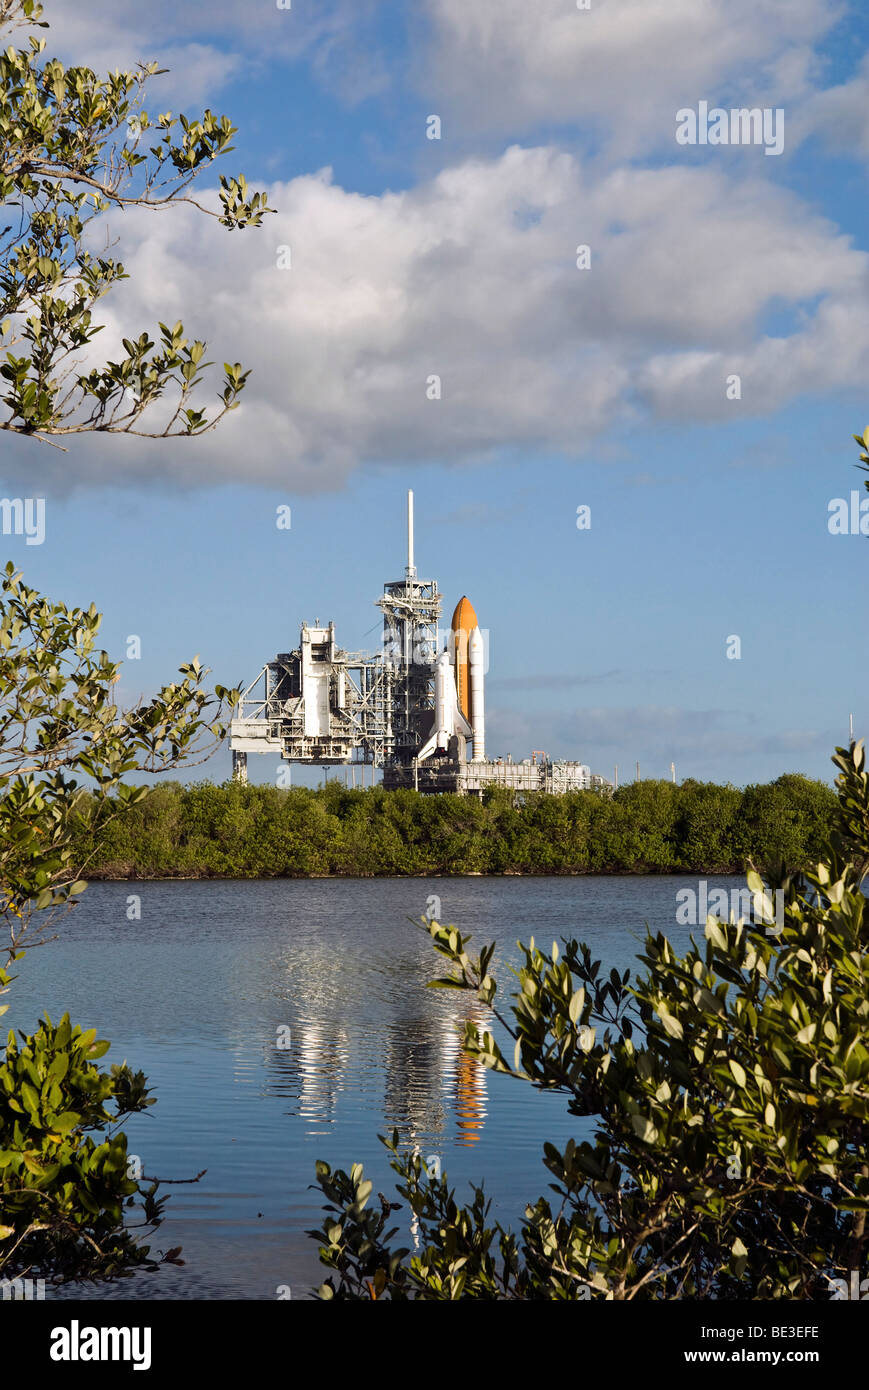 Space Shuttle Atlantis sits ready on the launch pad. - Stock Image